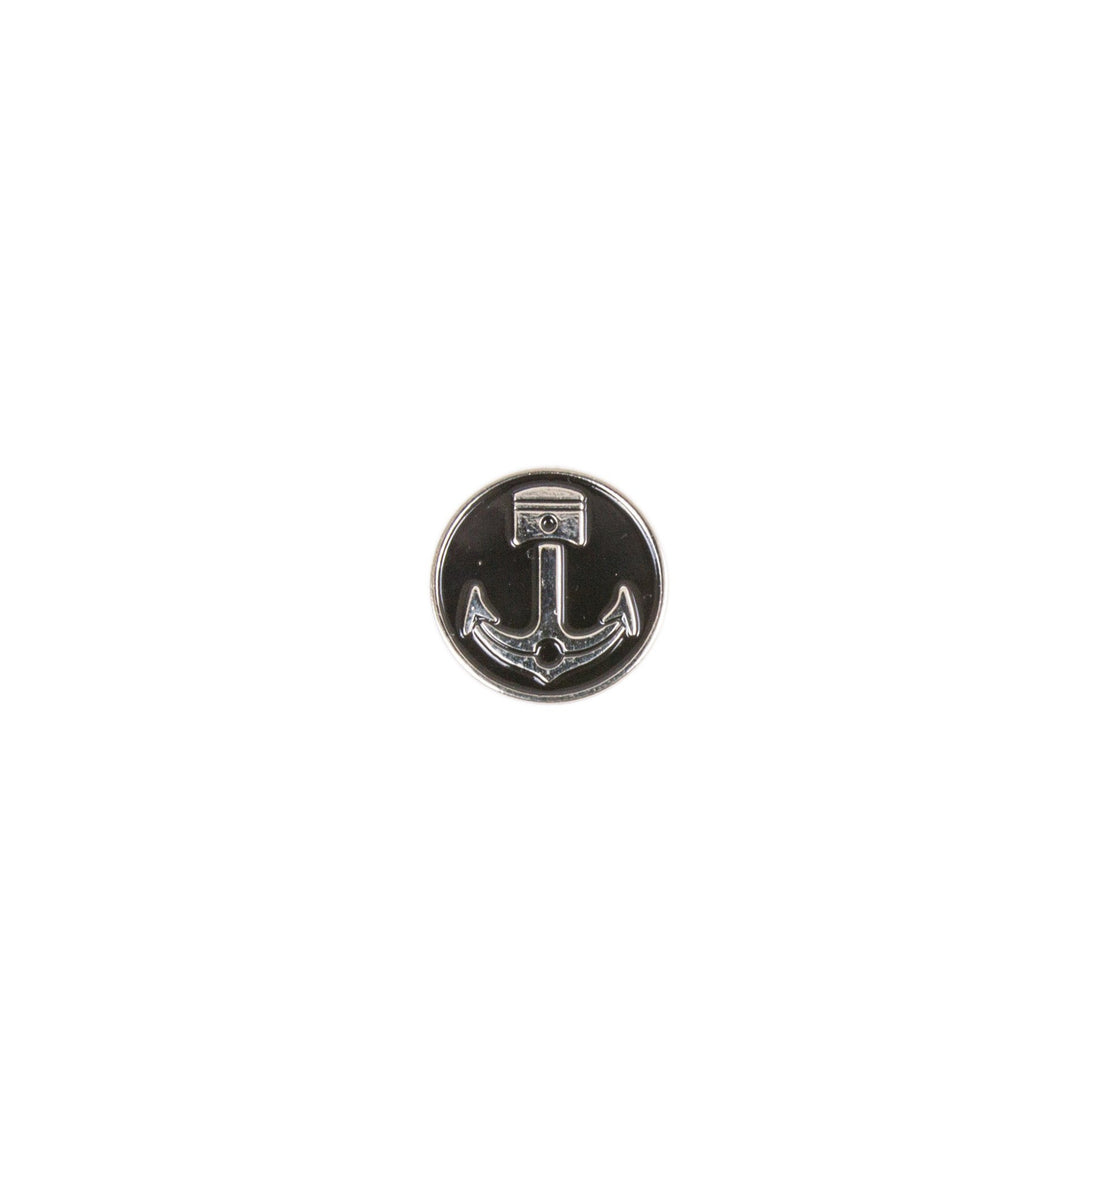 INR Anchor Piston Enamel Pin - Accessories: Pins - Iron and Resin